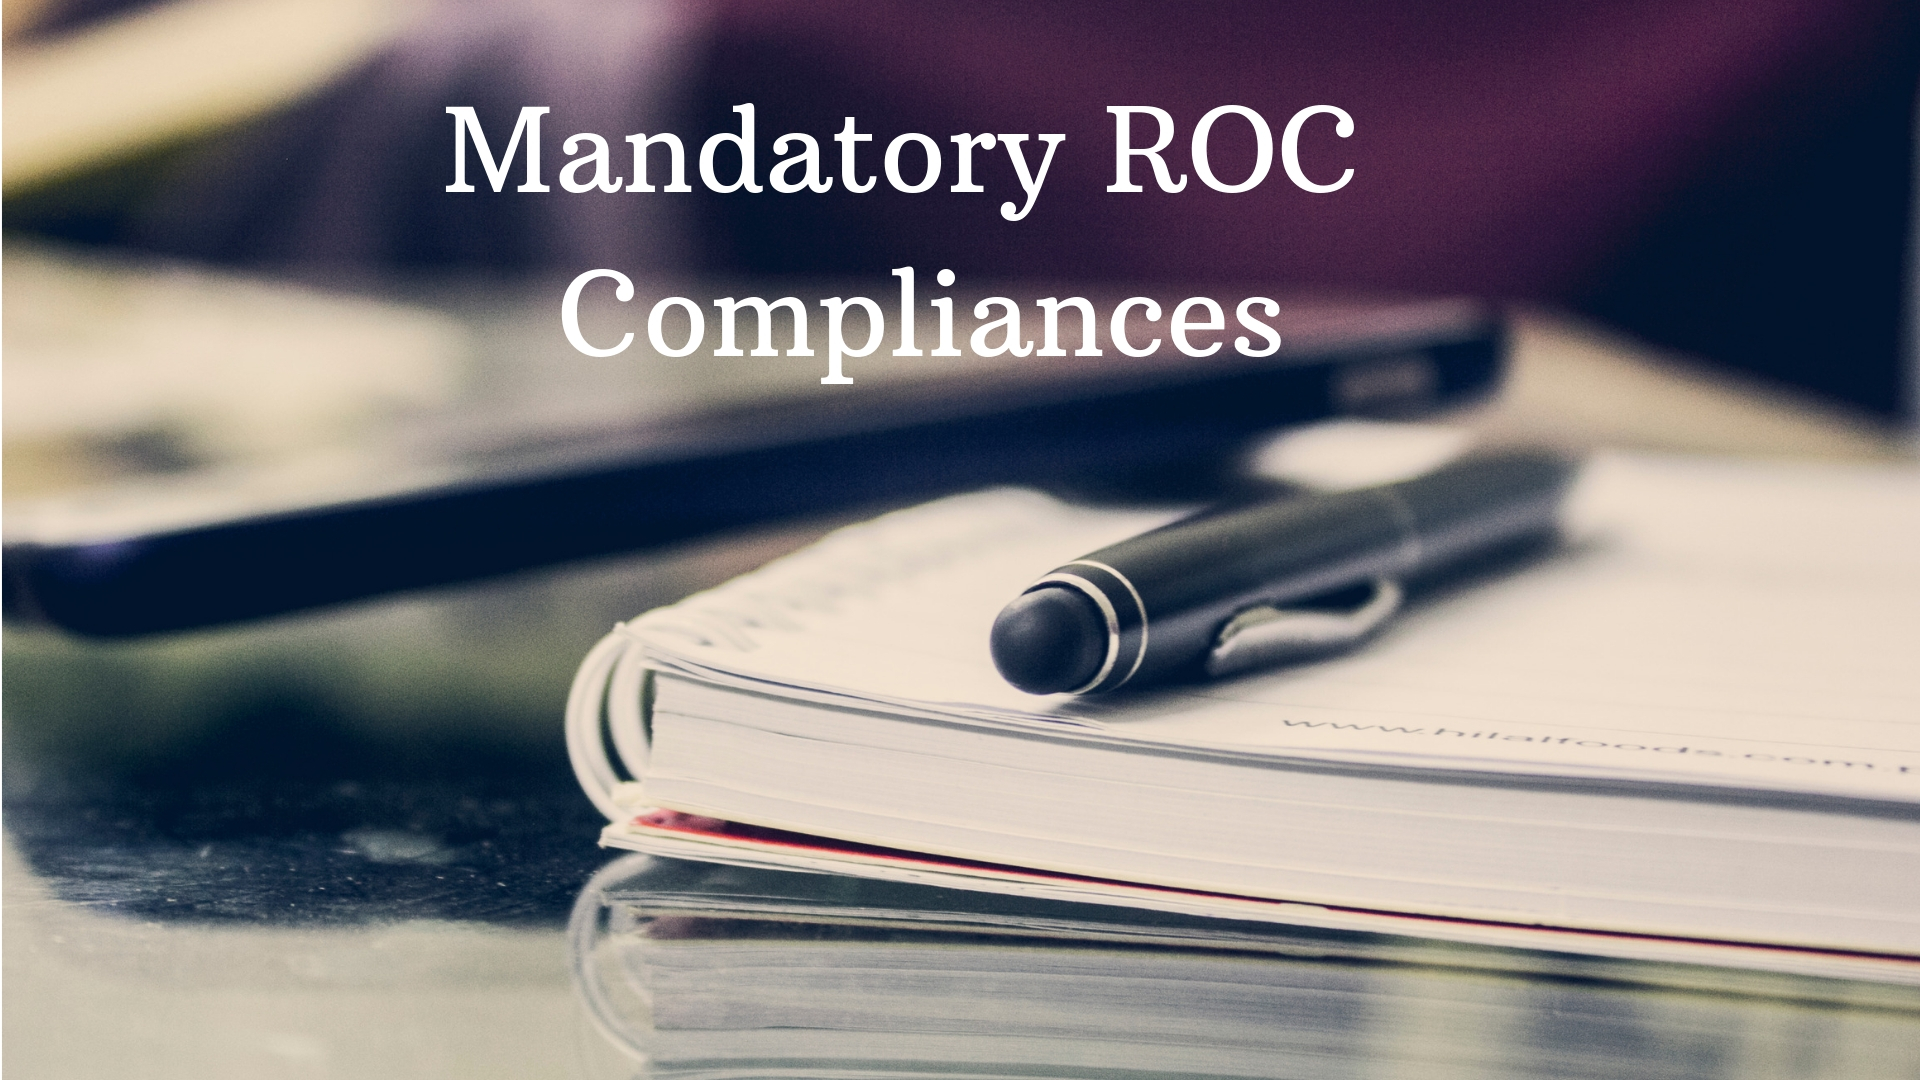 Mandatory ROC compliances that every company must follow